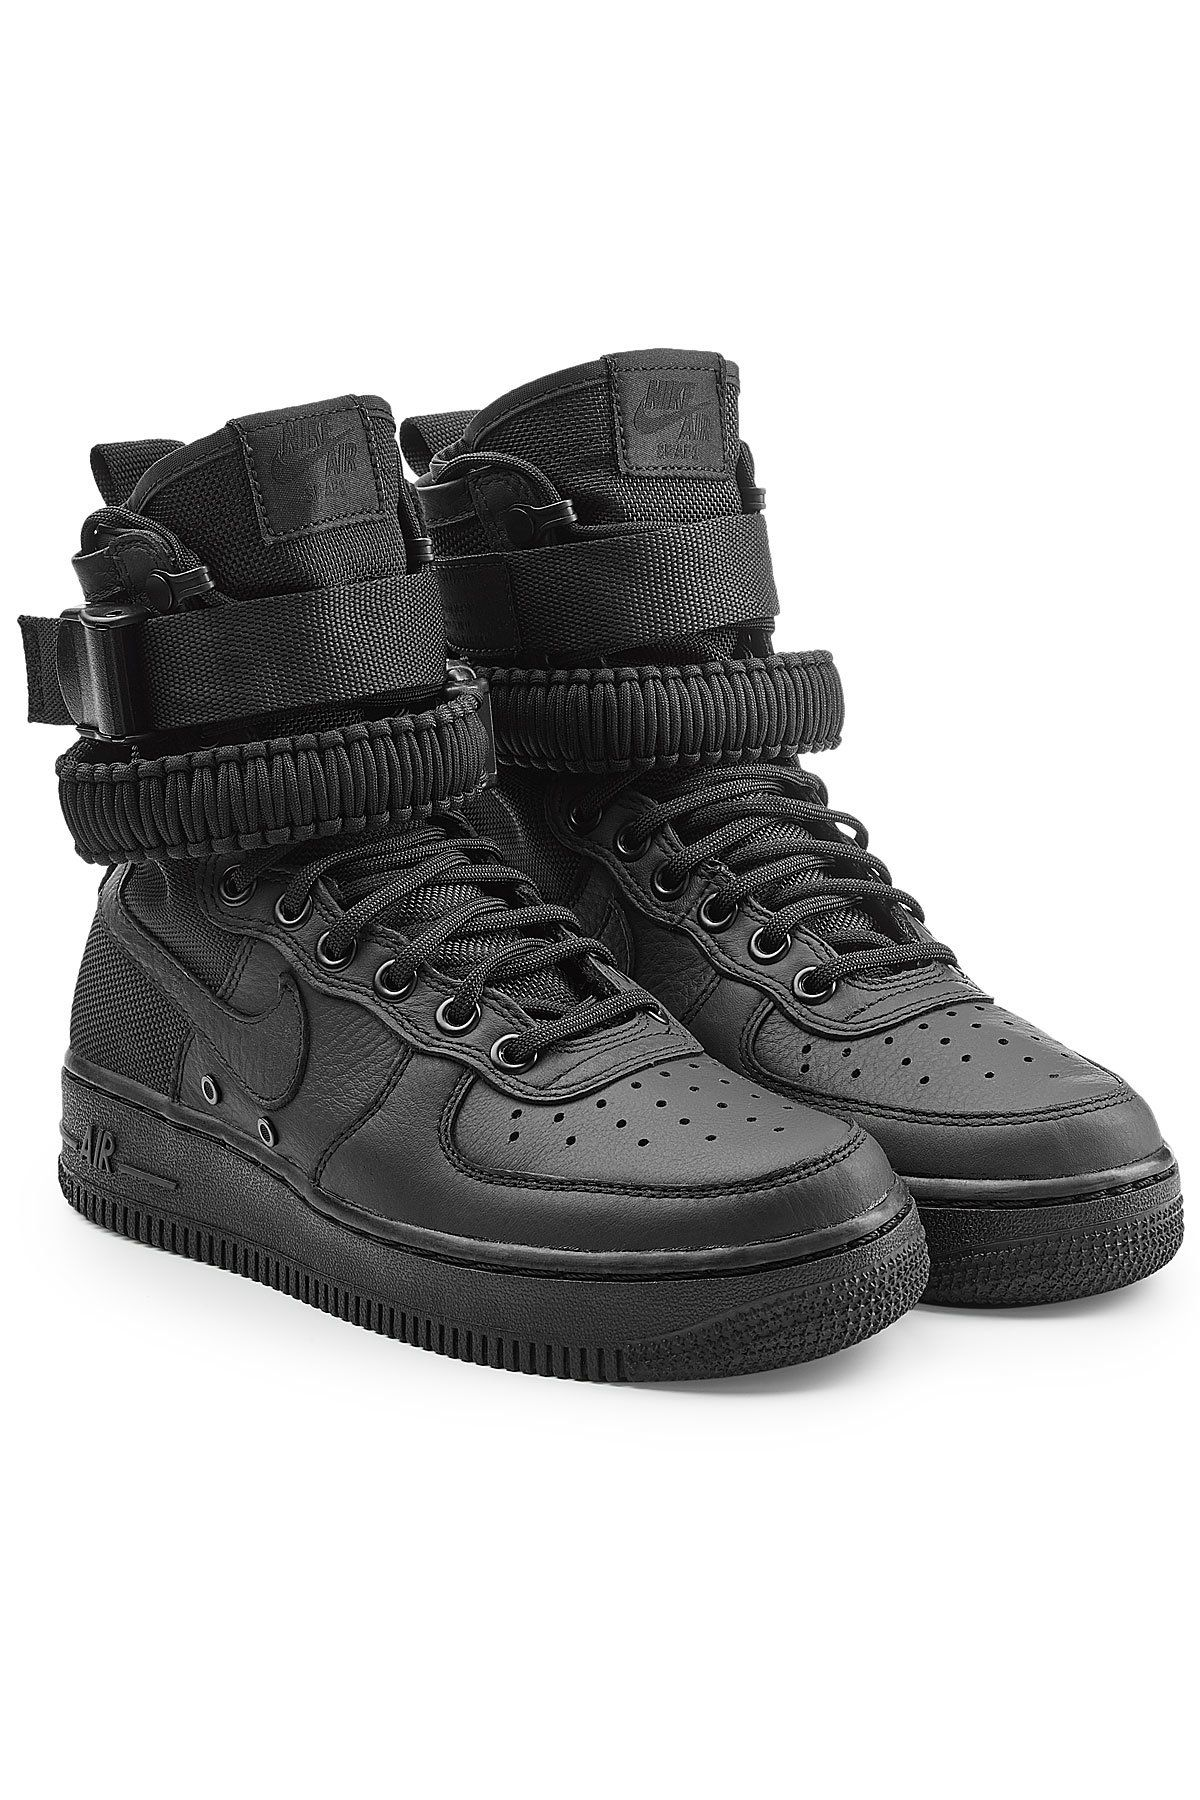 reputable site 1b473 229ba NIKE SF AIR FORCE 1 HIGH TOP SNEAKERS WITH LEATHER.  nike  shoes